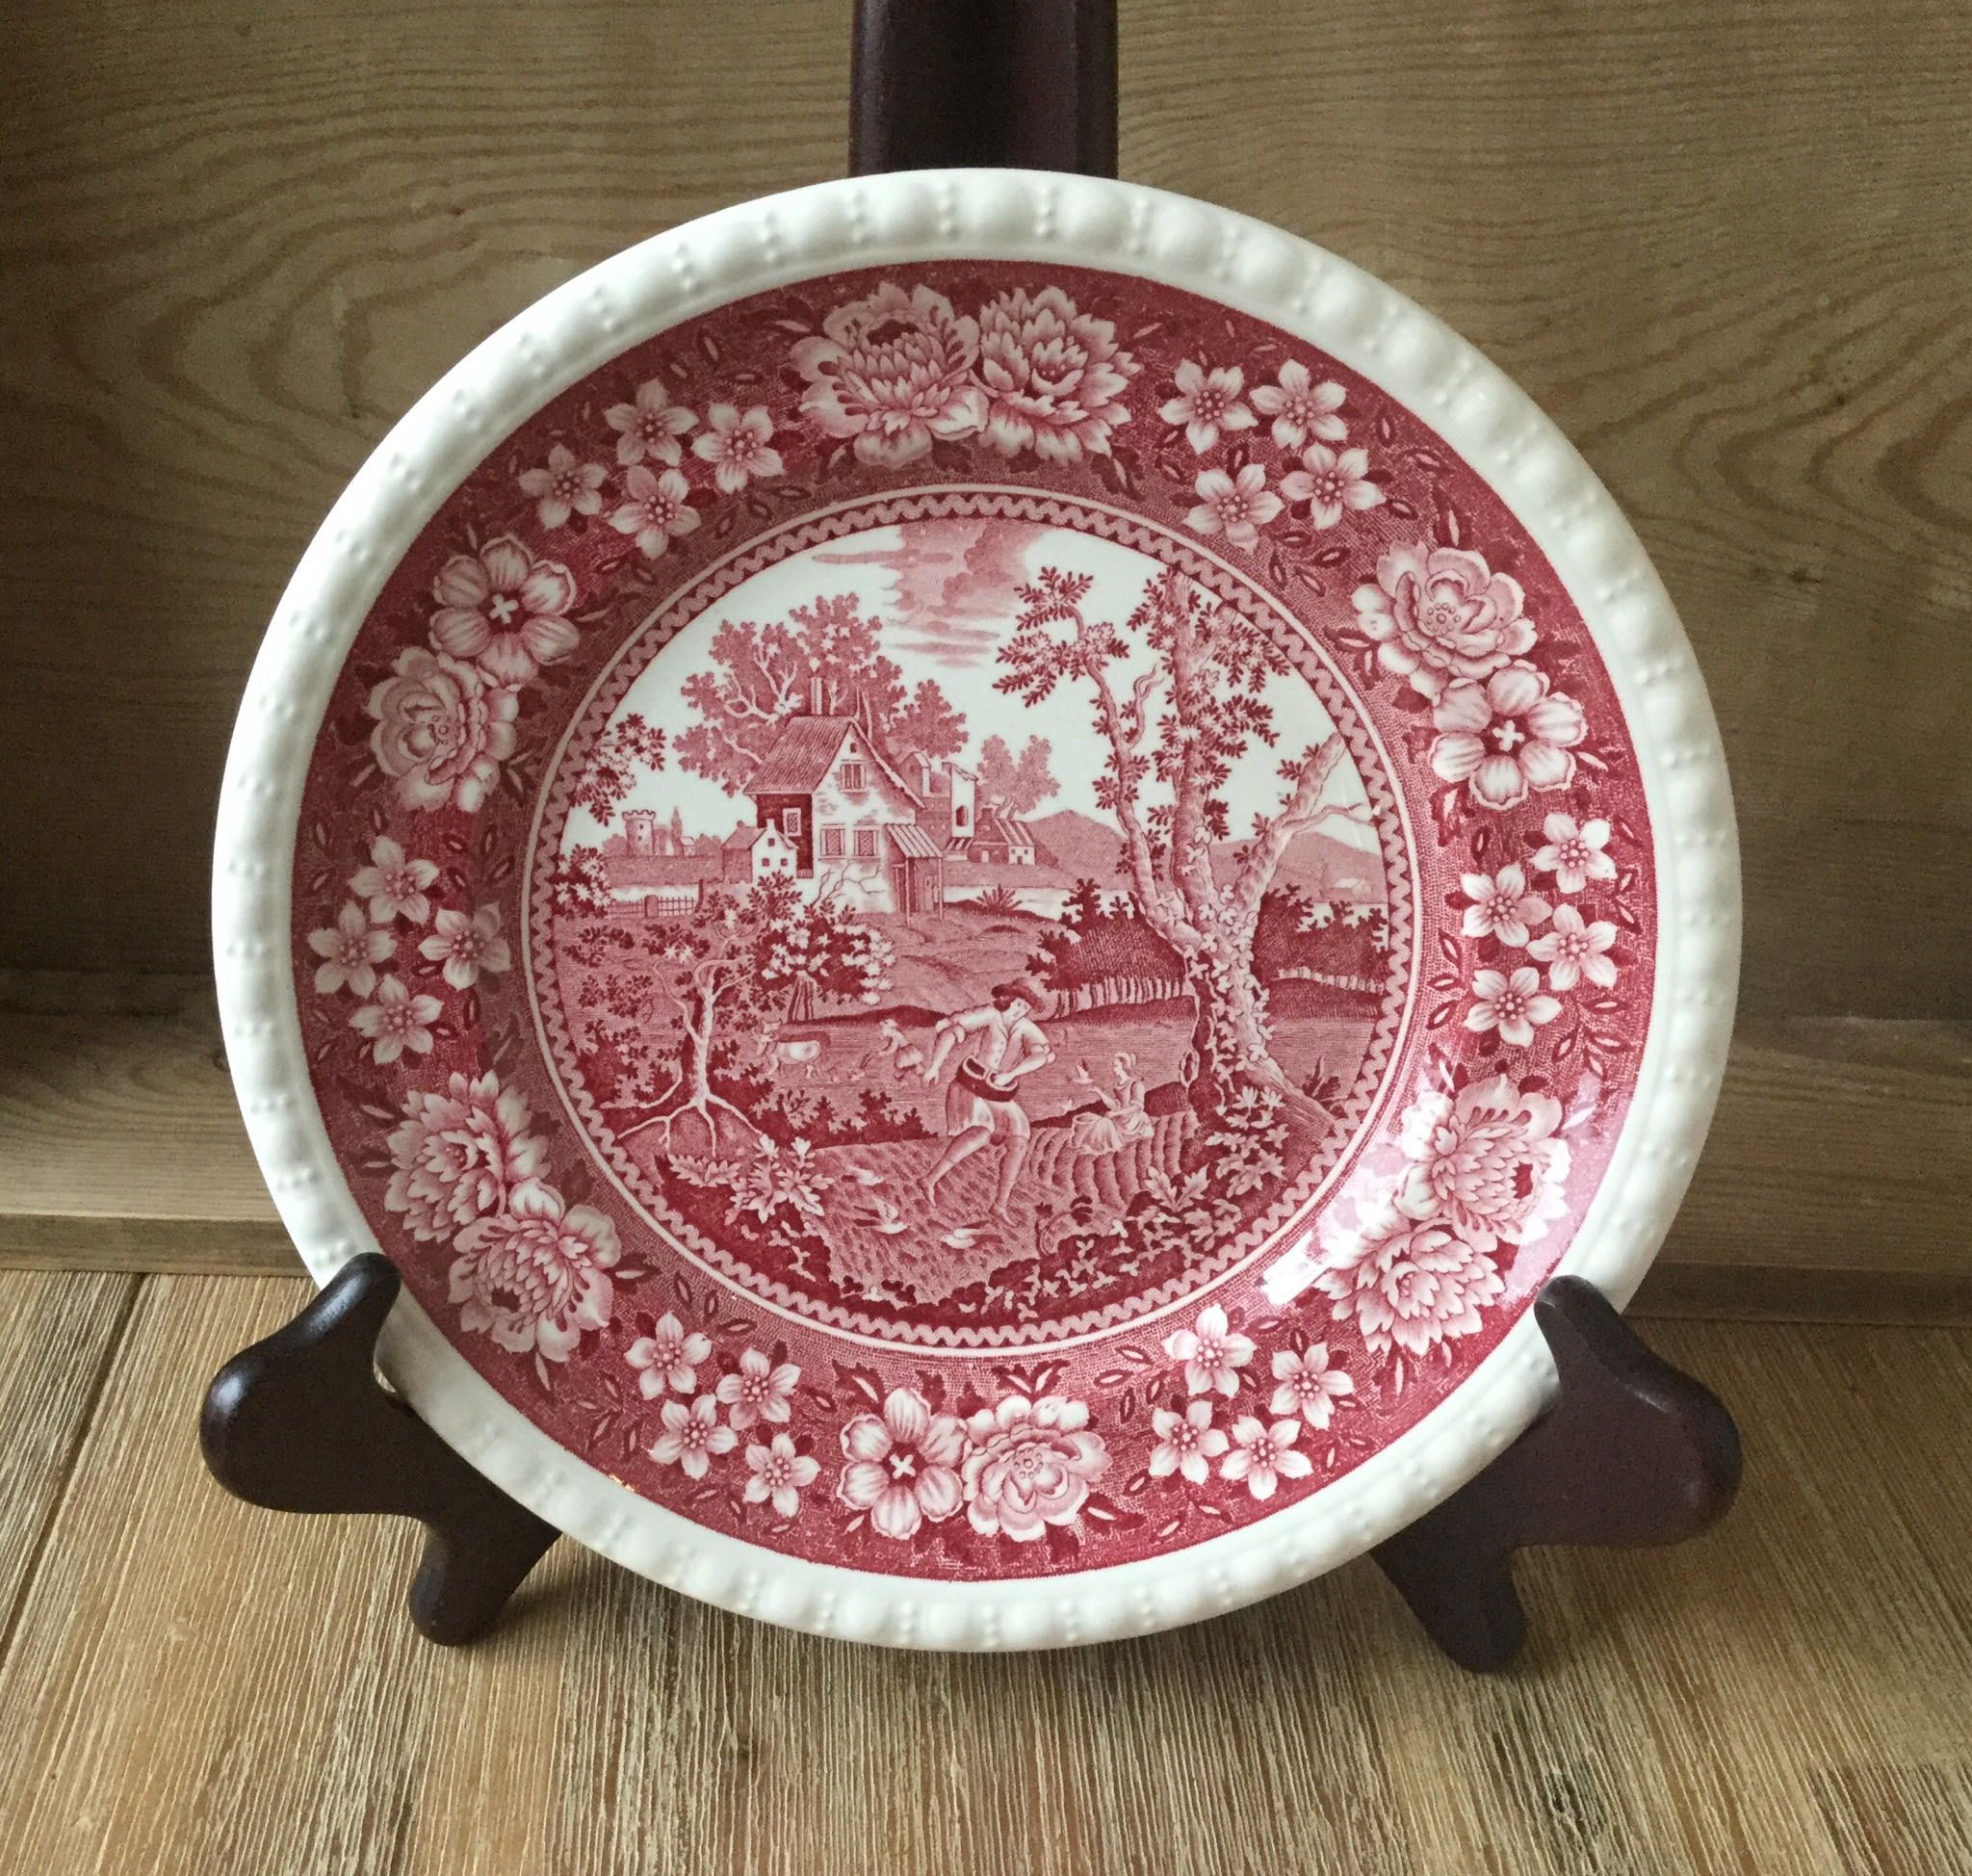 Villeroy Boch Plate Rusticana Red And White Vintage Cake Plate 8